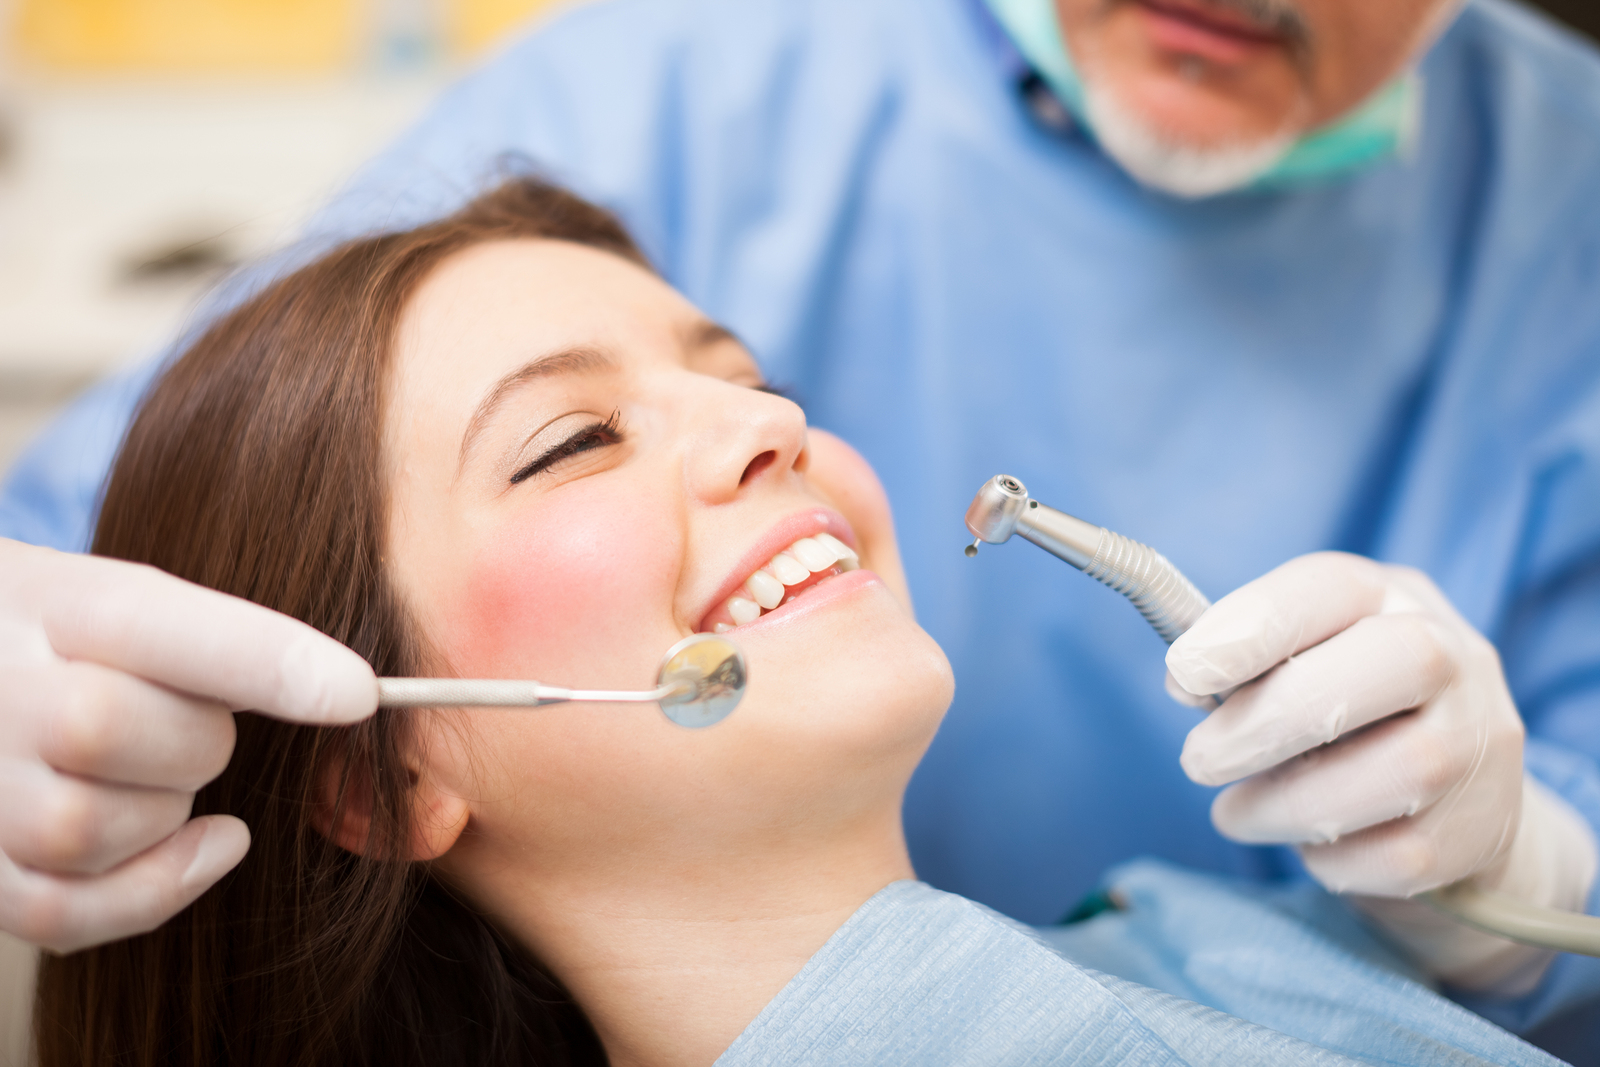 Teeth Whitening Techniques For a Better Smile